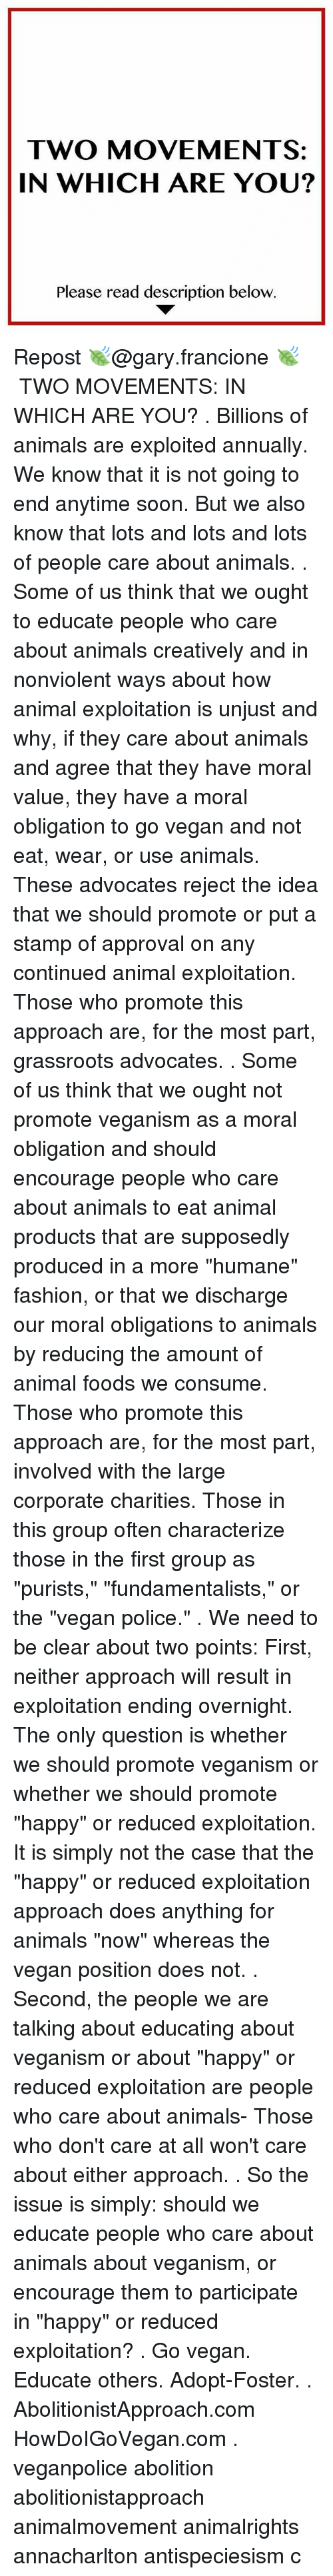 people should continue to use animal